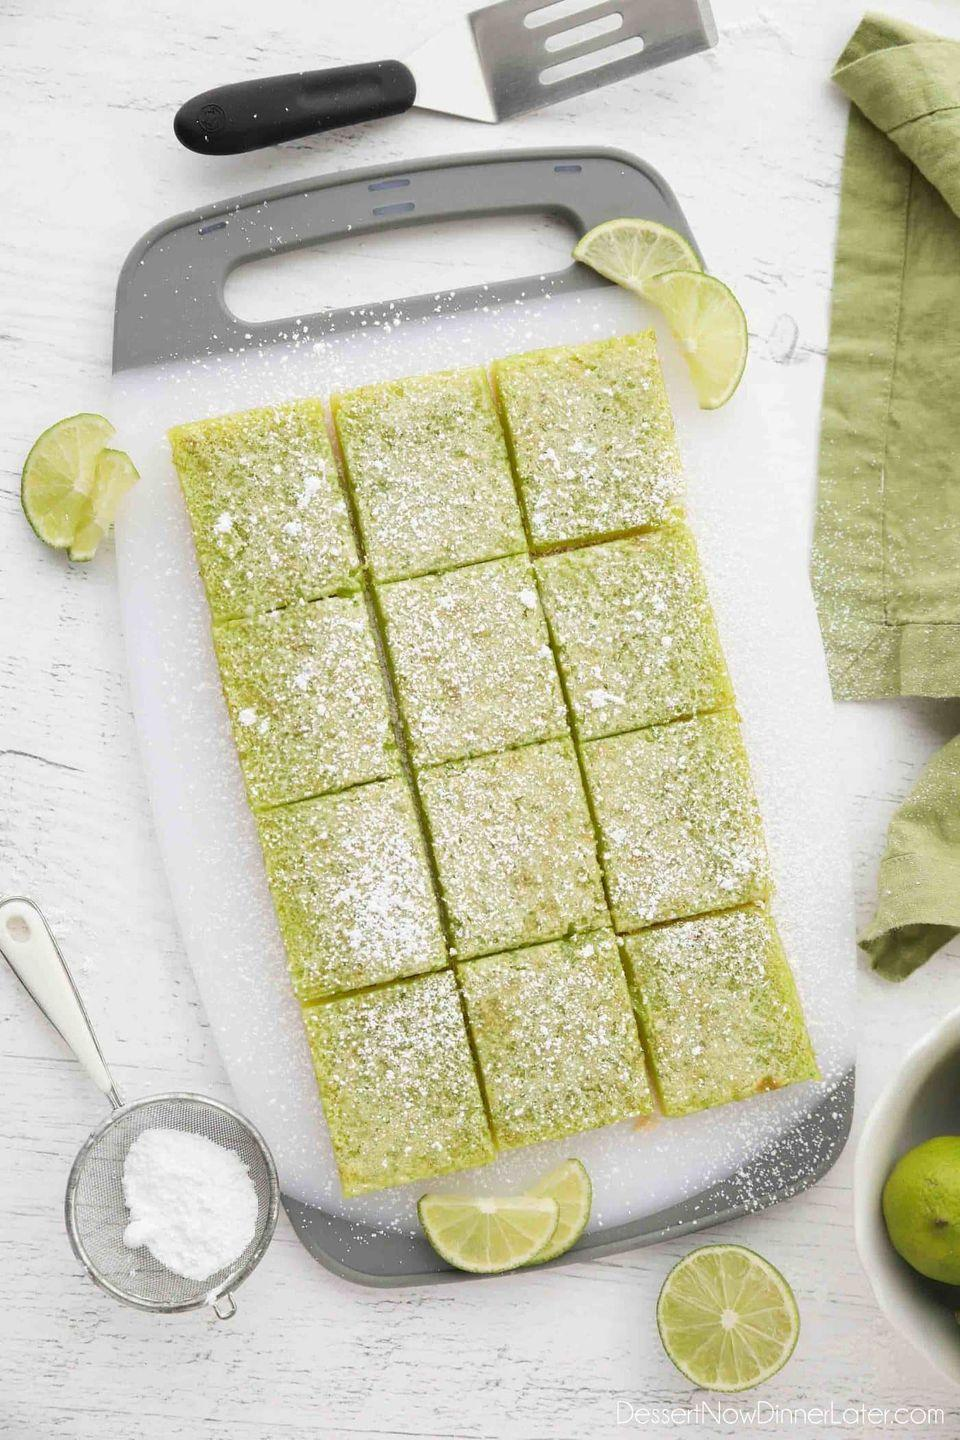 """<p>Obsessed with <a href=""""https://www.thepioneerwoman.com/food-cooking/recipes/a12104/lemon-bars/"""" rel=""""nofollow noopener"""" target=""""_blank"""" data-ylk=""""slk:lemon bars"""" class=""""link rapid-noclick-resp"""">lemon bars</a>? Try this lime version that has all the citrus tang you love with a green tint for St. Patrick's!</p><p><strong>Get the recipe at <a href=""""https://www.dessertnowdinnerlater.com/lime-bars/"""" rel=""""nofollow noopener"""" target=""""_blank"""" data-ylk=""""slk:Dessert Now Dinner Later"""" class=""""link rapid-noclick-resp"""">Dessert Now Dinner Later</a>.</strong></p><p><strong><a class=""""link rapid-noclick-resp"""" href=""""https://go.redirectingat.com?id=74968X1596630&url=https%3A%2F%2Fwww.walmart.com%2Fsearch%2F%3Fquery%3Dpioneer%2Bwoman%2Bmixing%2Bbowls&sref=https%3A%2F%2Fwww.thepioneerwoman.com%2Ffood-cooking%2Fmeals-menus%2Fg35269814%2Fst-patricks-day-desserts%2F"""" rel=""""nofollow noopener"""" target=""""_blank"""" data-ylk=""""slk:SHOP SPATULAS"""">SHOP SPATULAS</a><br></strong></p>"""